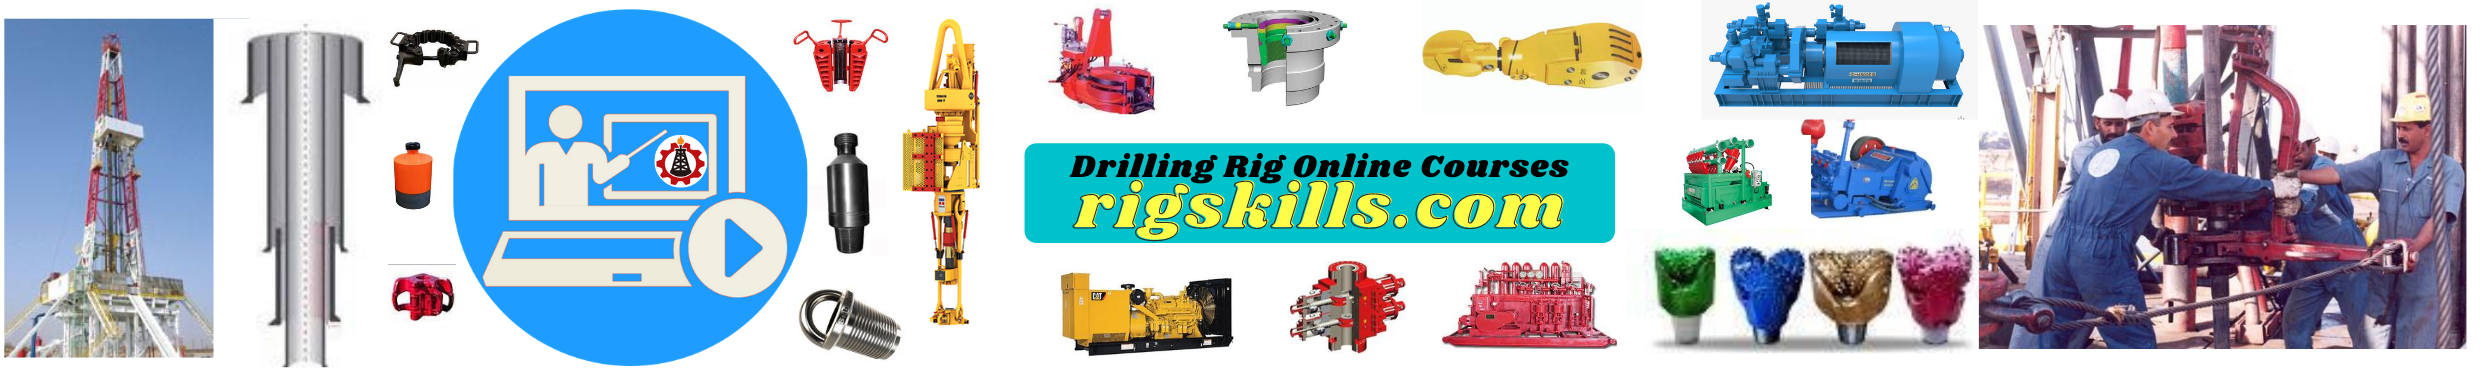 Oil drilling Rig Courses